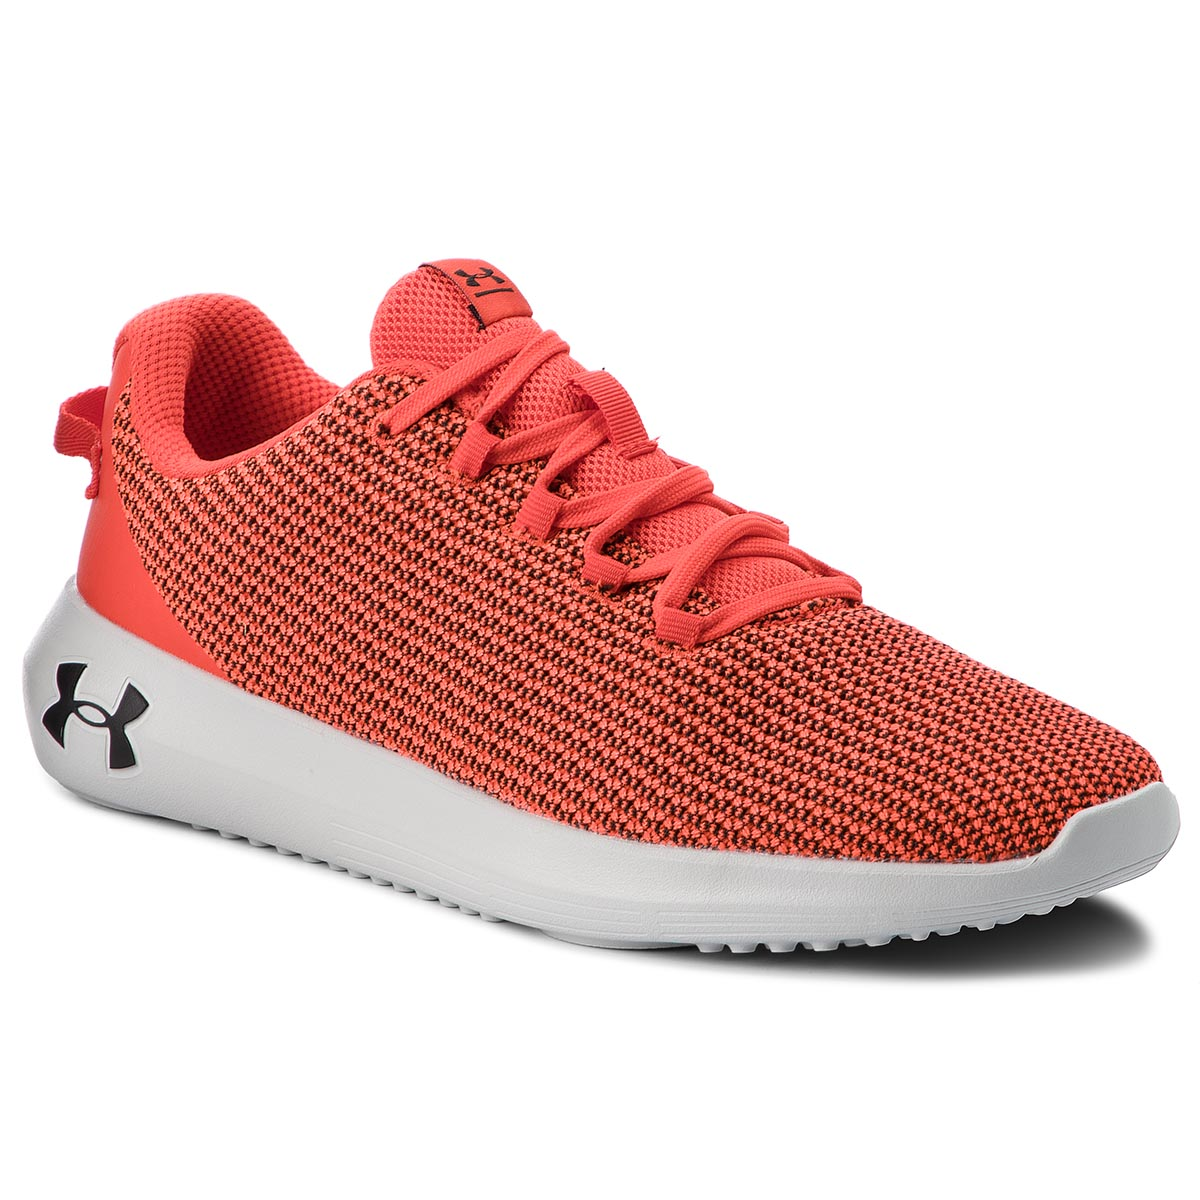 Topánky UNDER ARMOUR - Ua Ripple 3021186-600 Red - Glami.sk e91f7ae4ee8